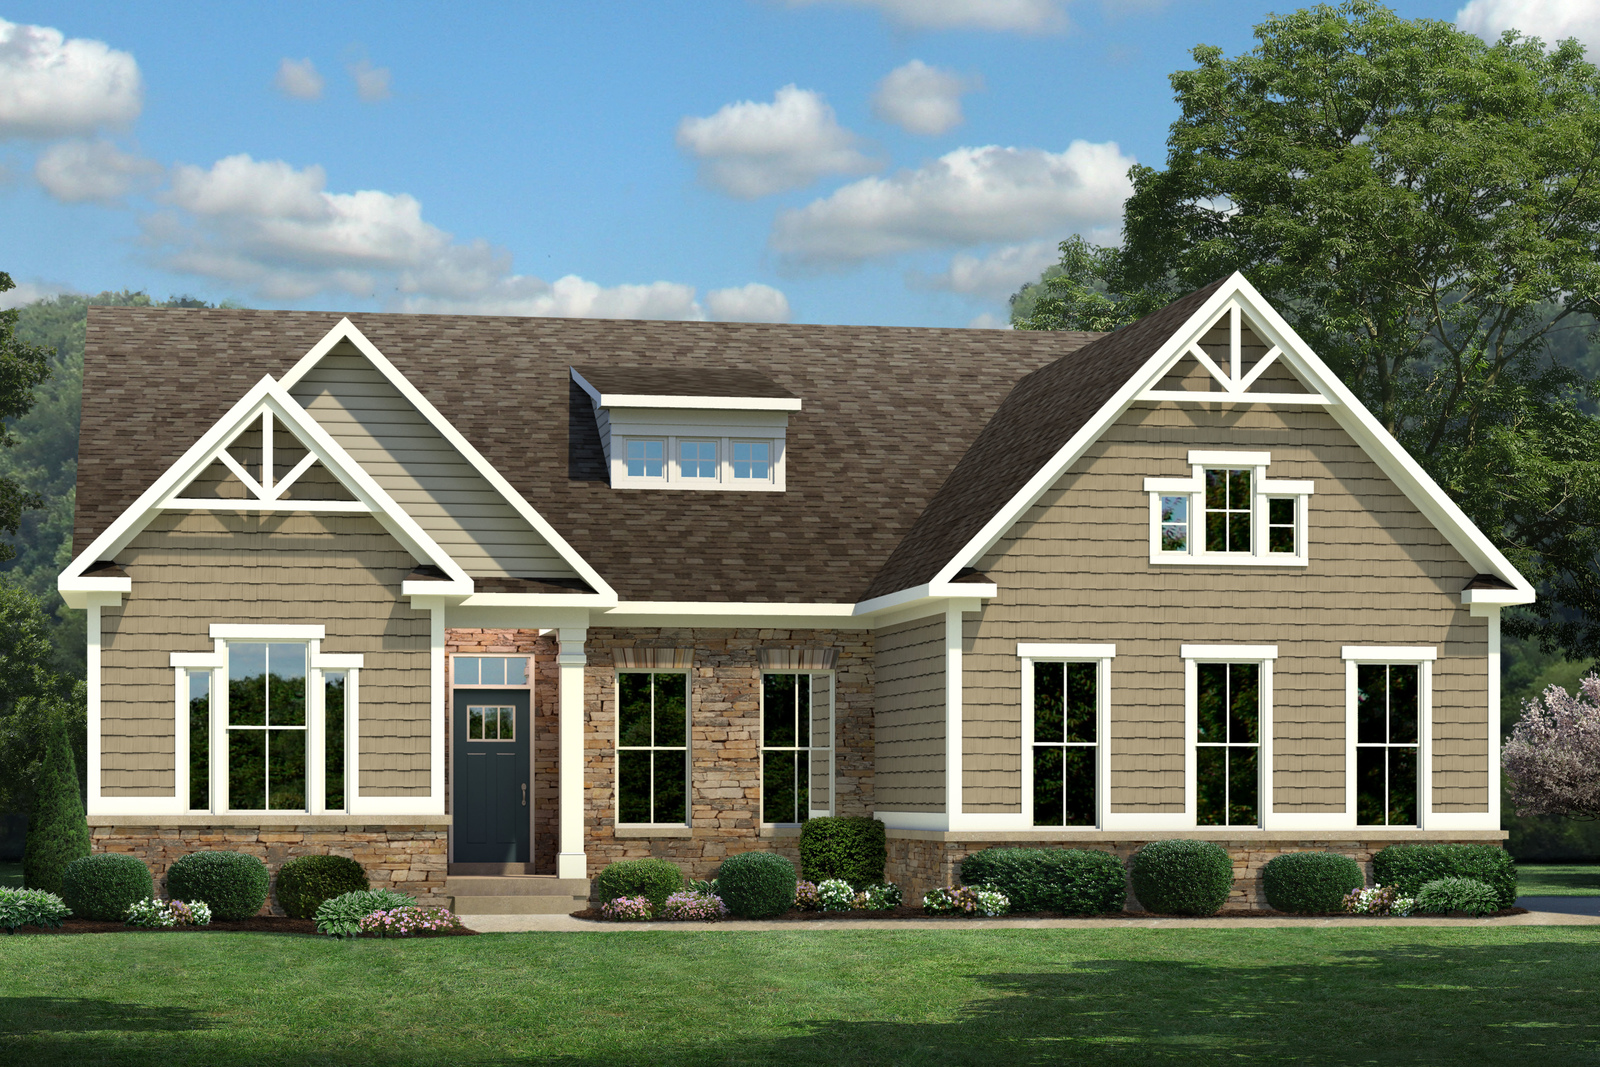 Join the VIP list to receive all the updates on one-level living at Laurel Grove in Pine Township!